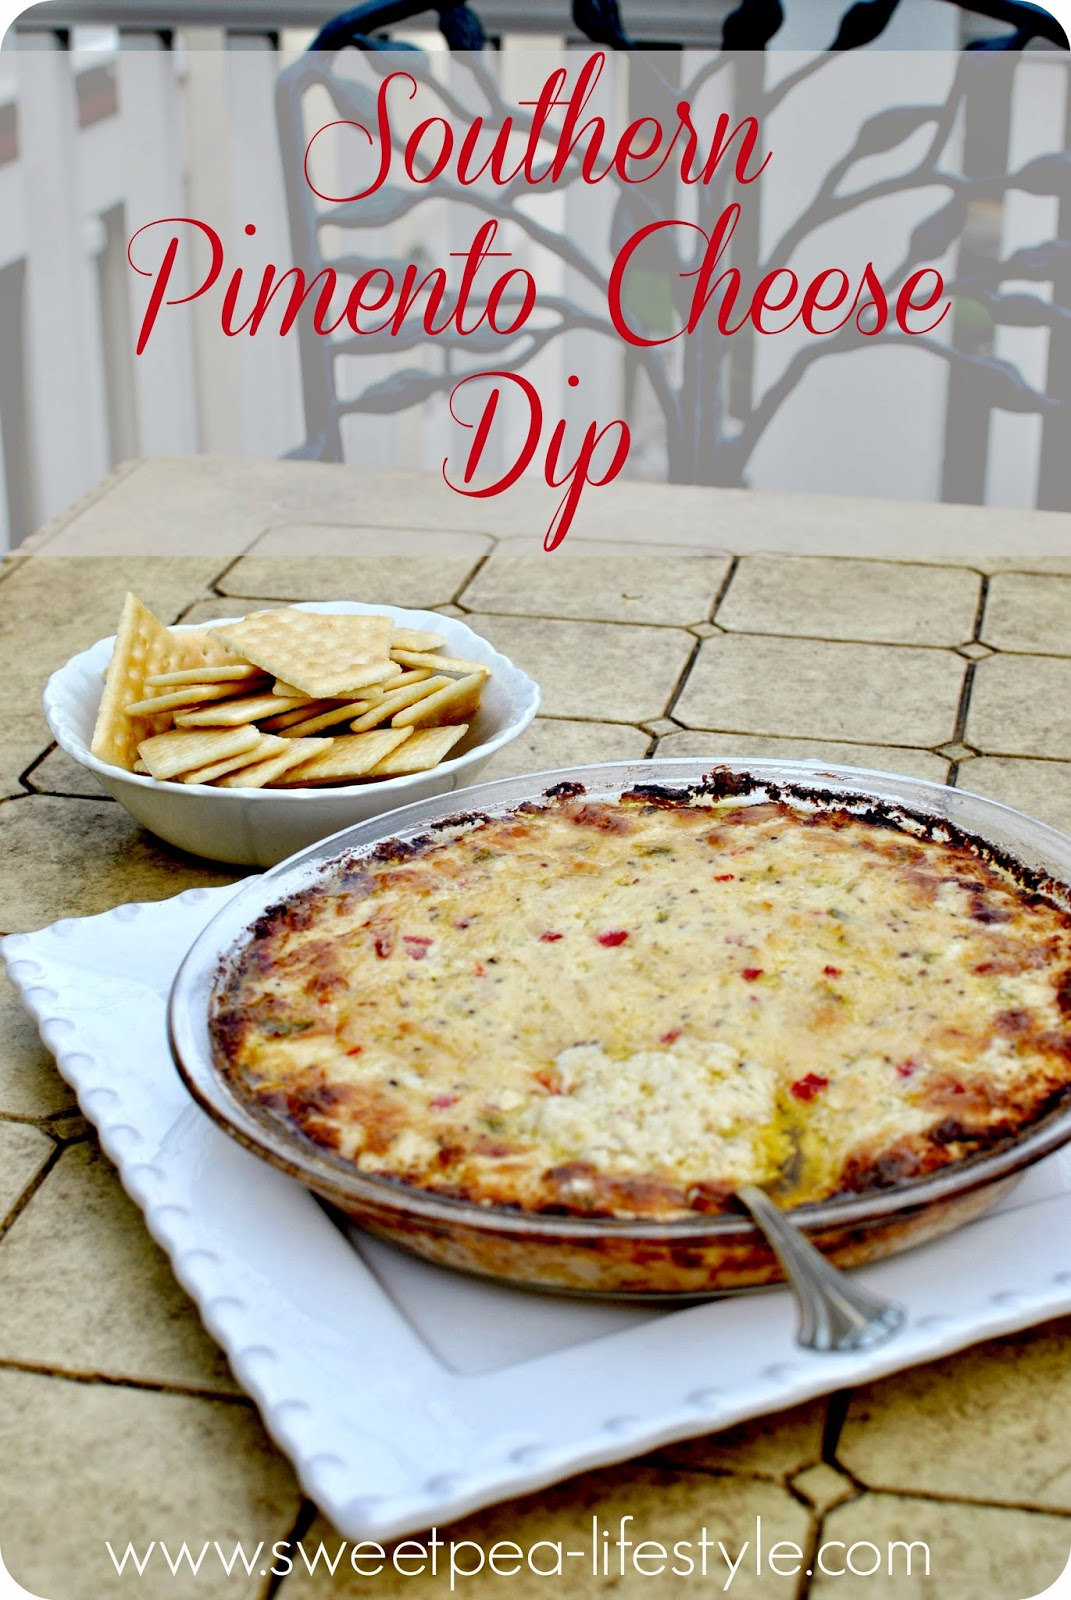 Southern Pimento Cheese Dip!